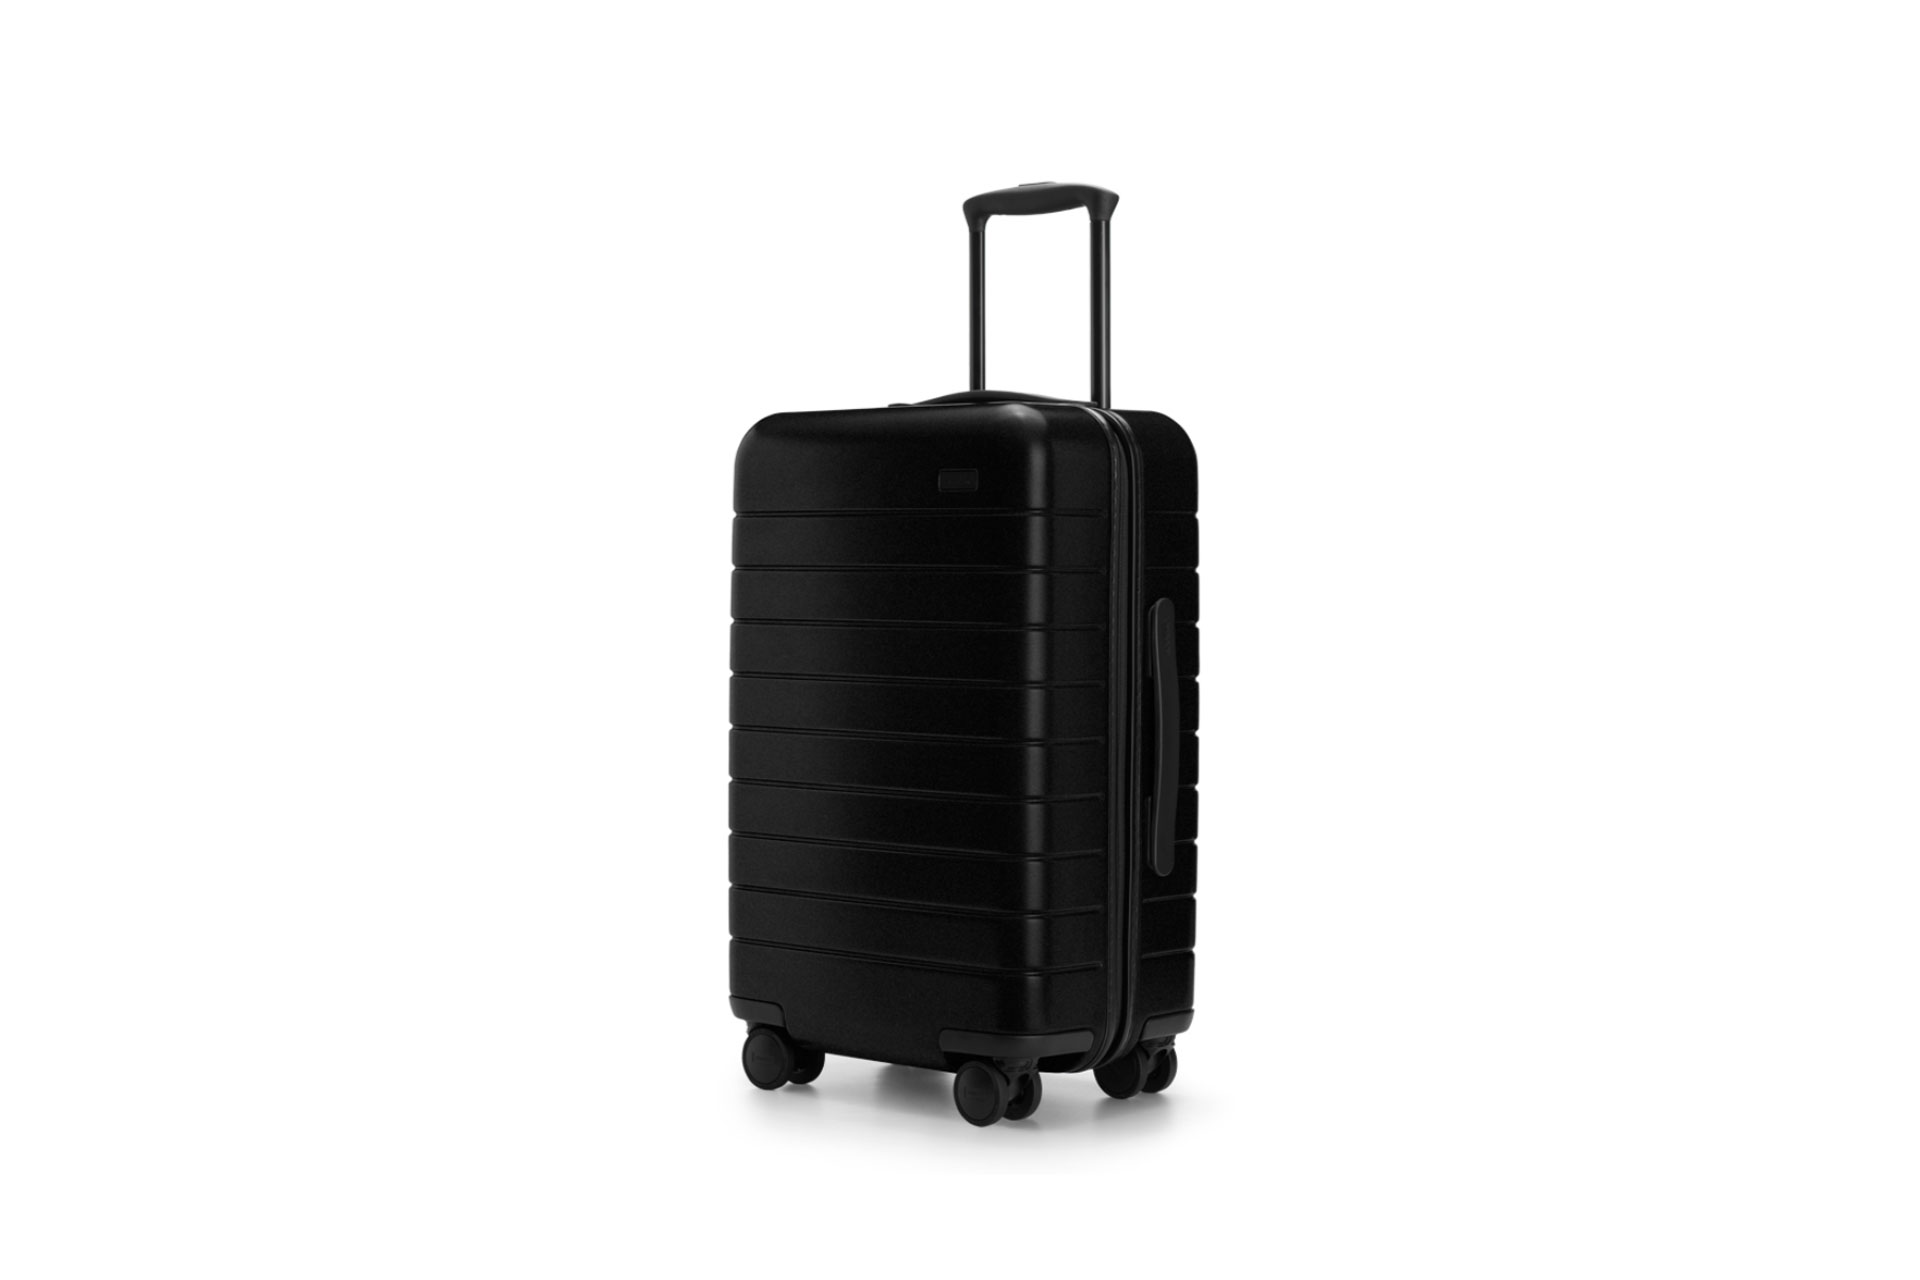 Away Travel Carry On Bag; Courtesy of Away